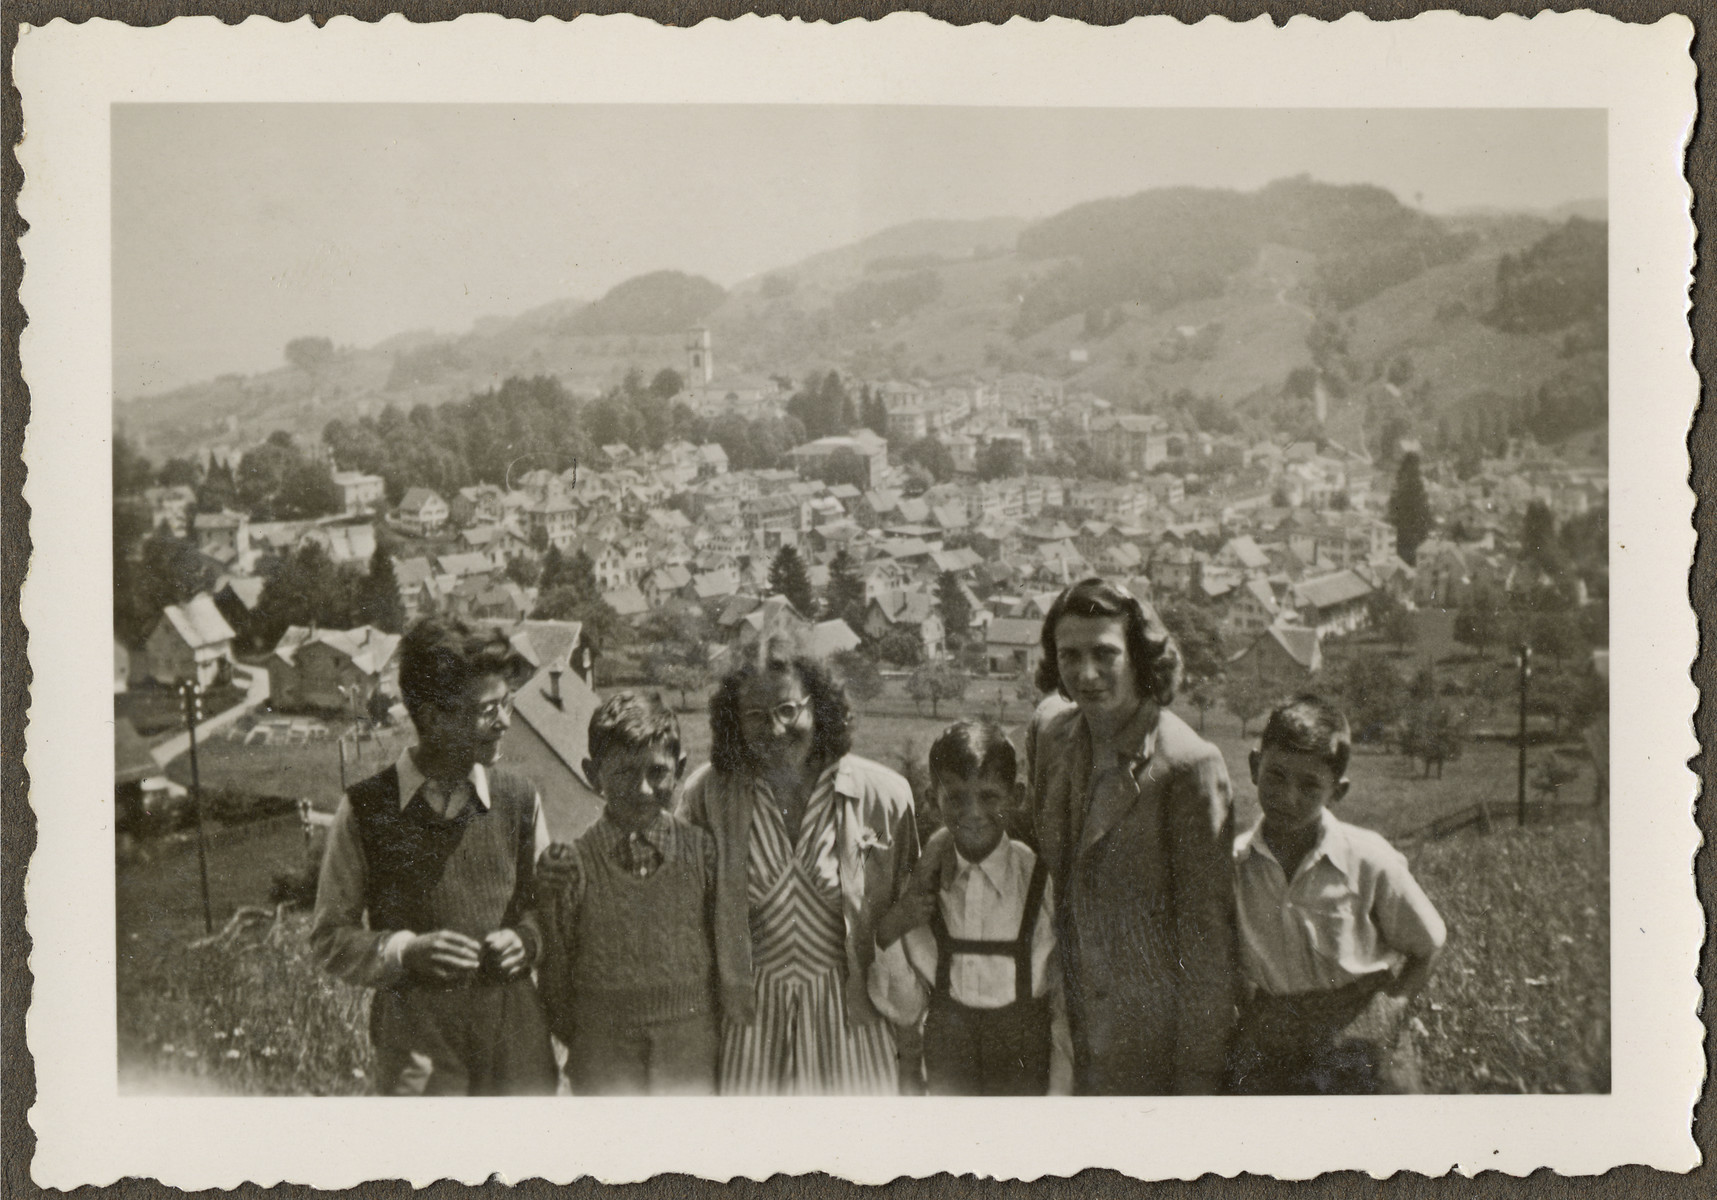 Children from the Heiden children's home and their mothers pose for a group portrait in front of view of the town.  Among those pictured is Manny Mandel (far right).